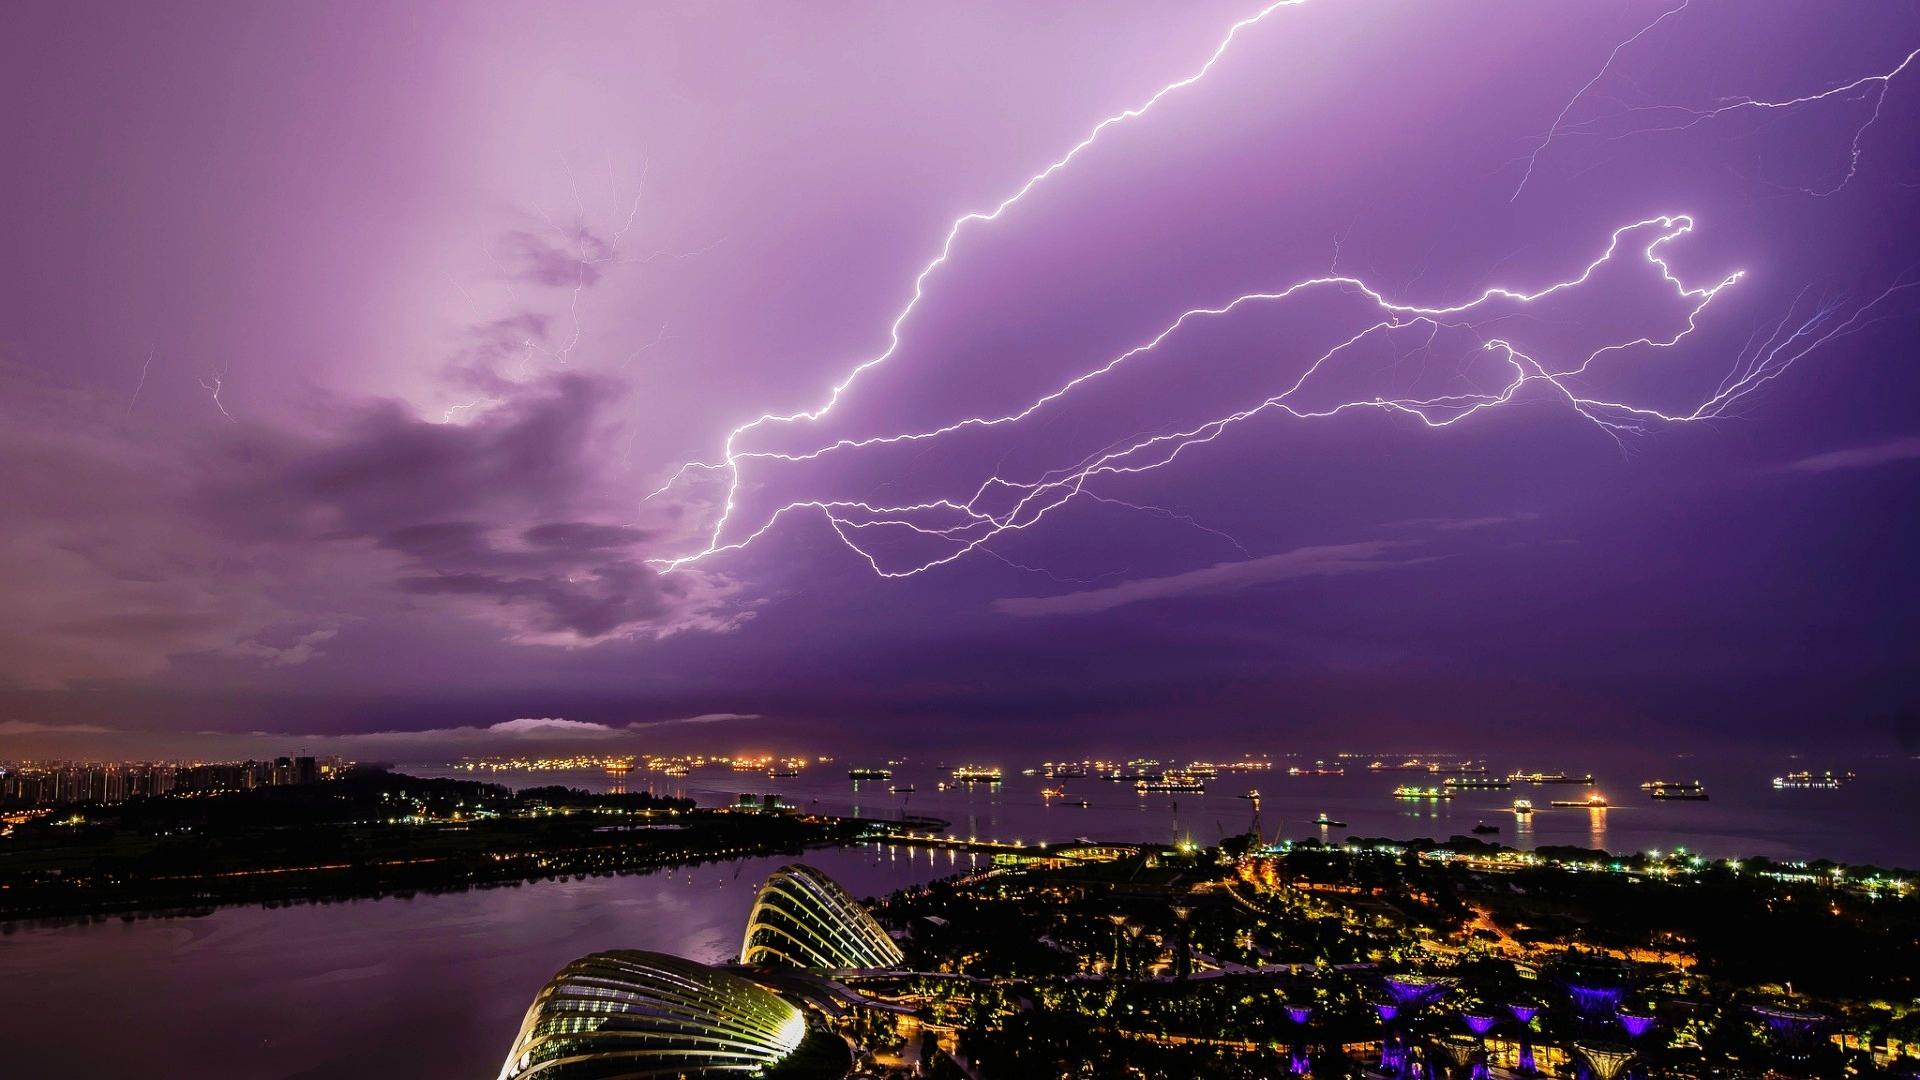 City View Wallpaper Hd Singapore City Night Thunderstorm Wallpapers 1920x1080